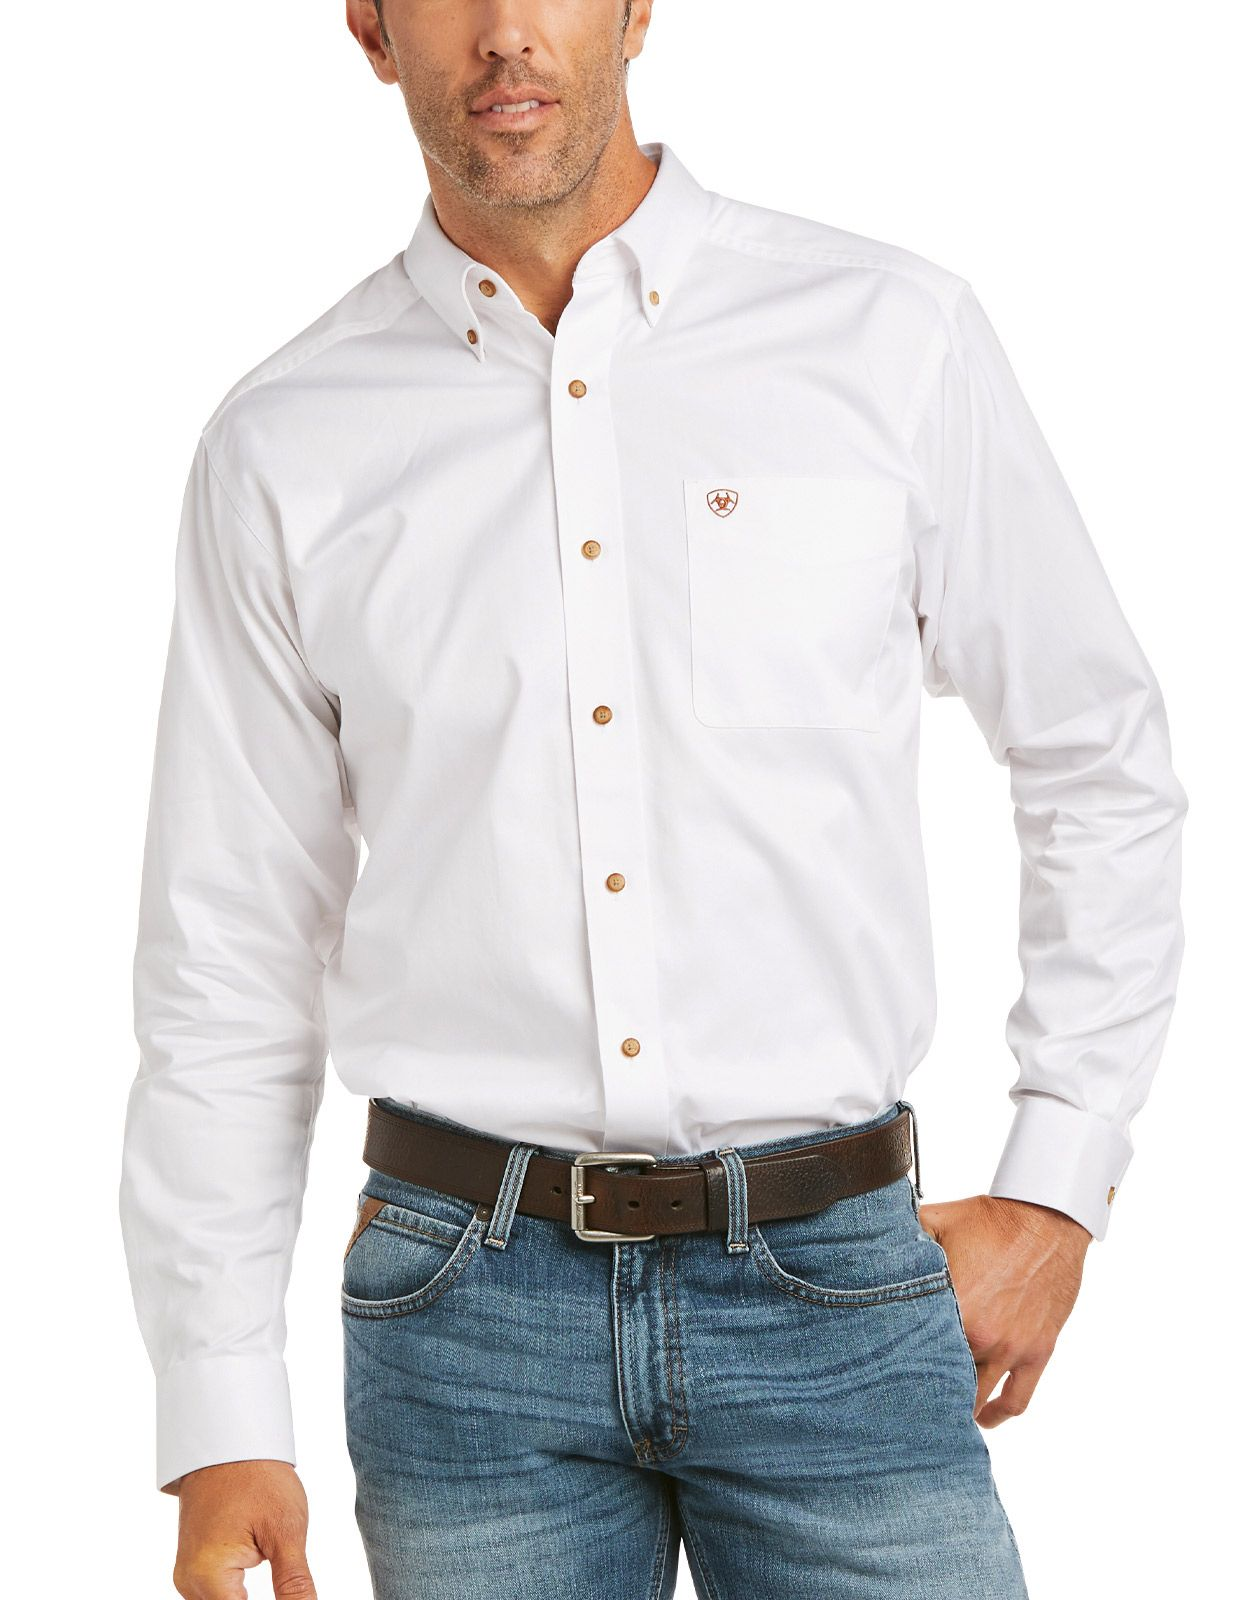 Ariat Men's Casual Series Fitted Long Sleeve Solid Button Down Shirt - White